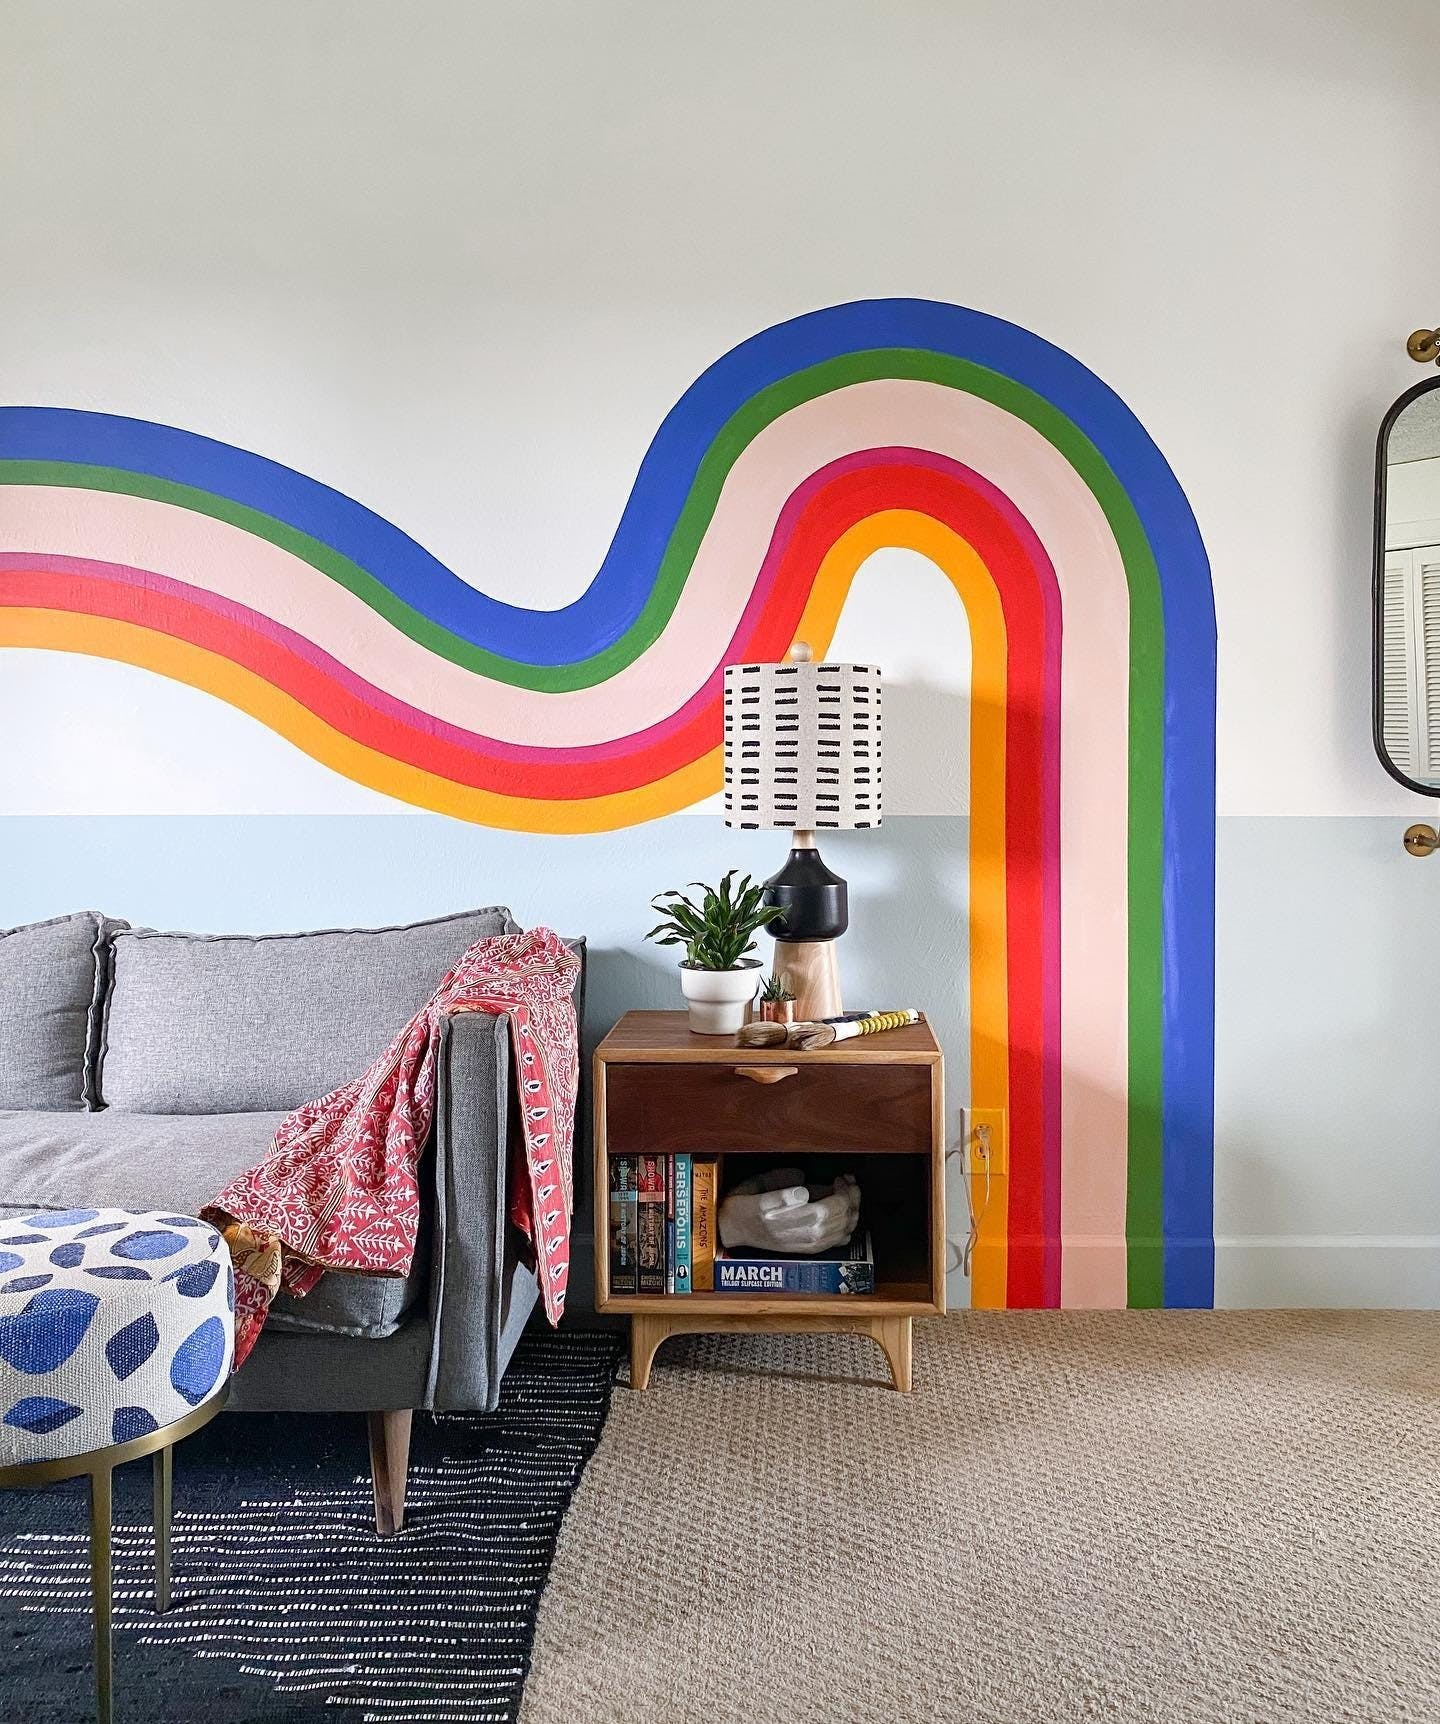 colorful curved rainbow mural painted on white walls in living room